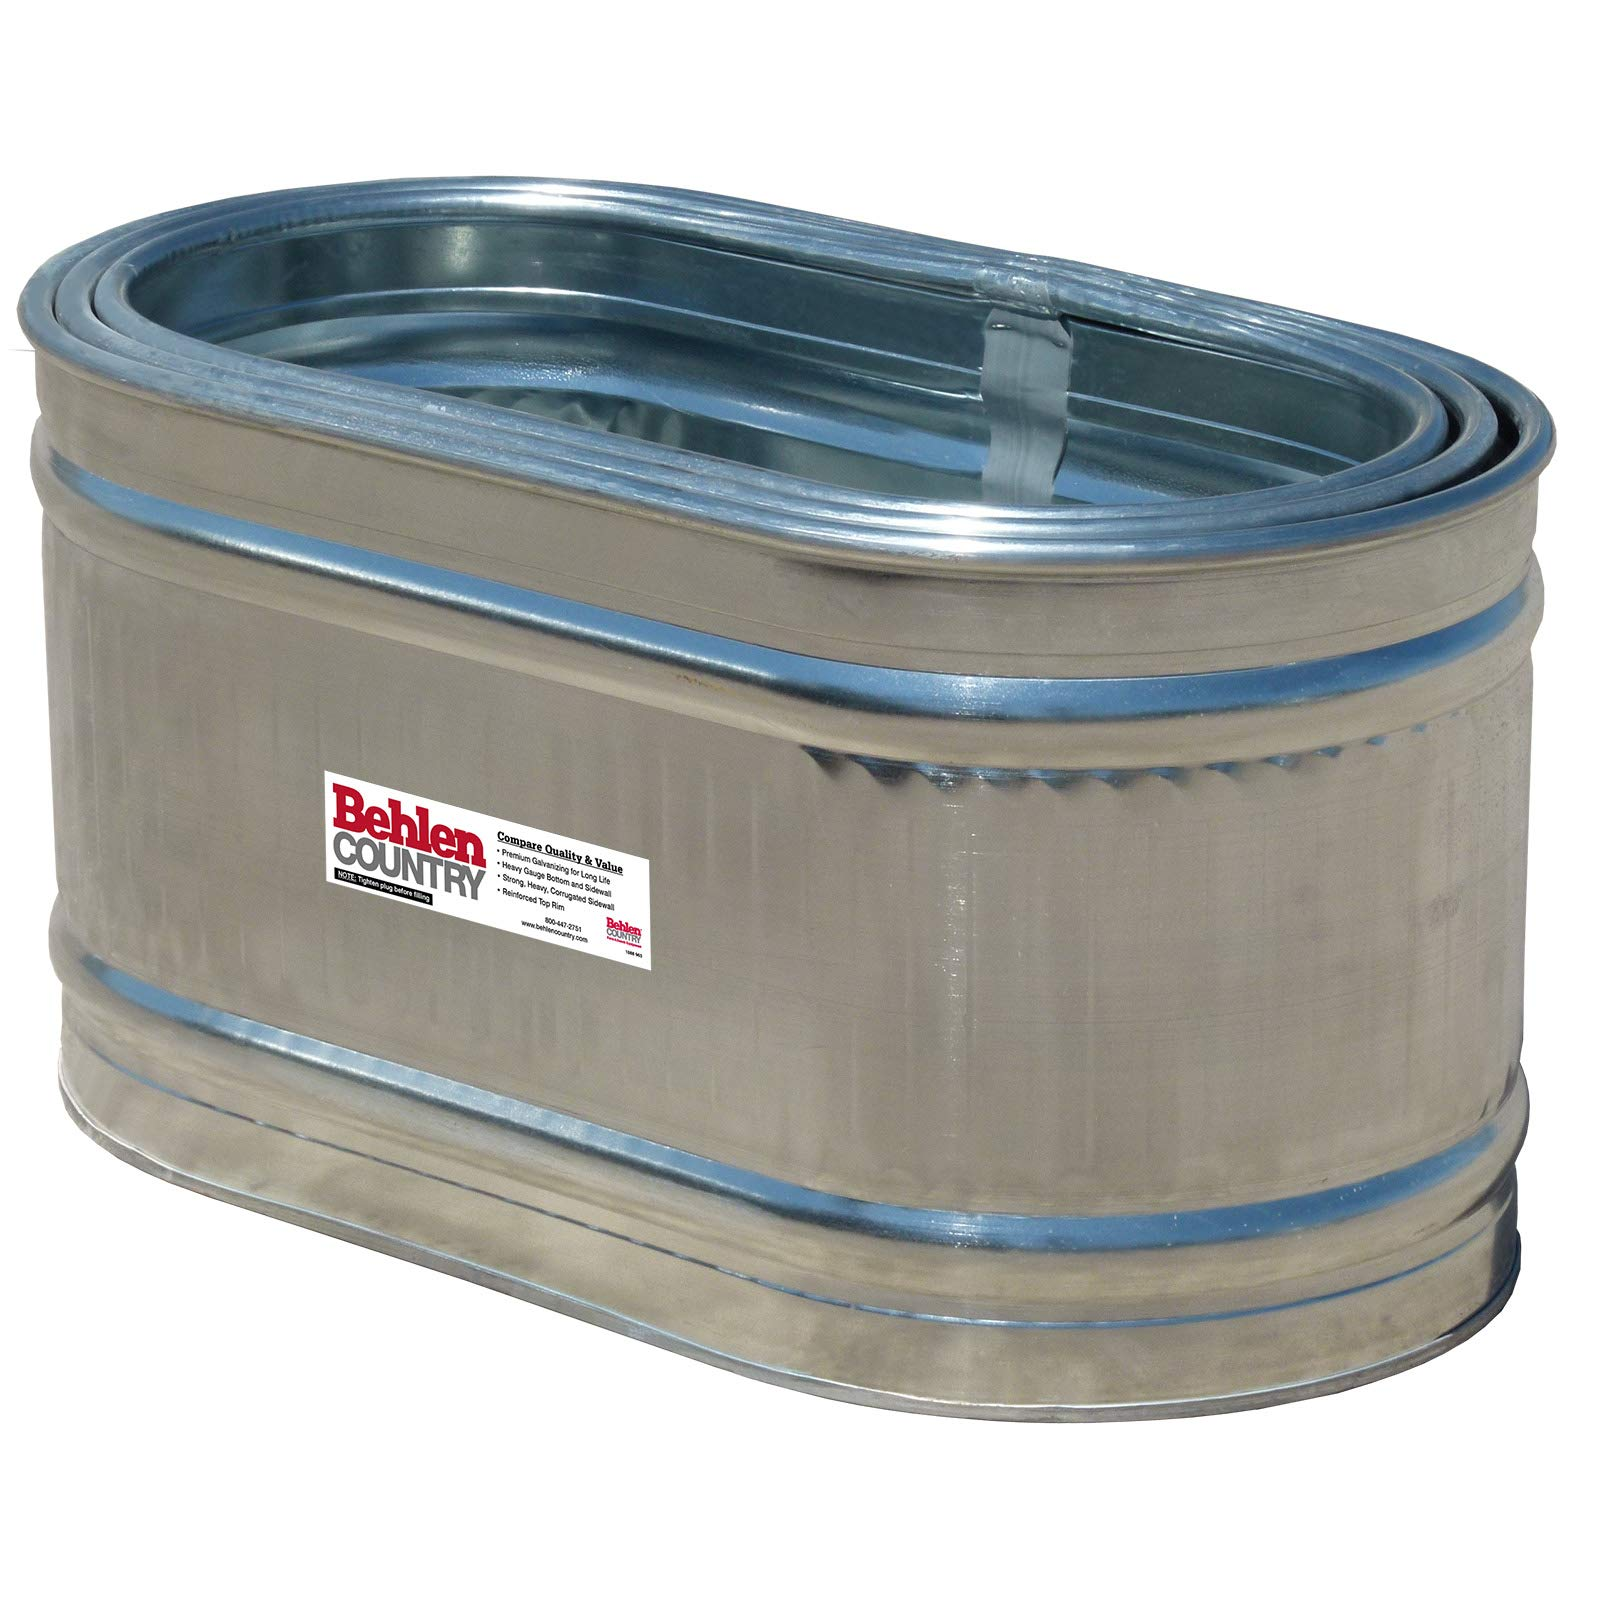 Behlen Country 50130028K 2' x 2' x 4' Round-End Galvanized Steel Stock Tank Nested Bundle, Approximately 90 Gallon (Pack of 3 Tanks)